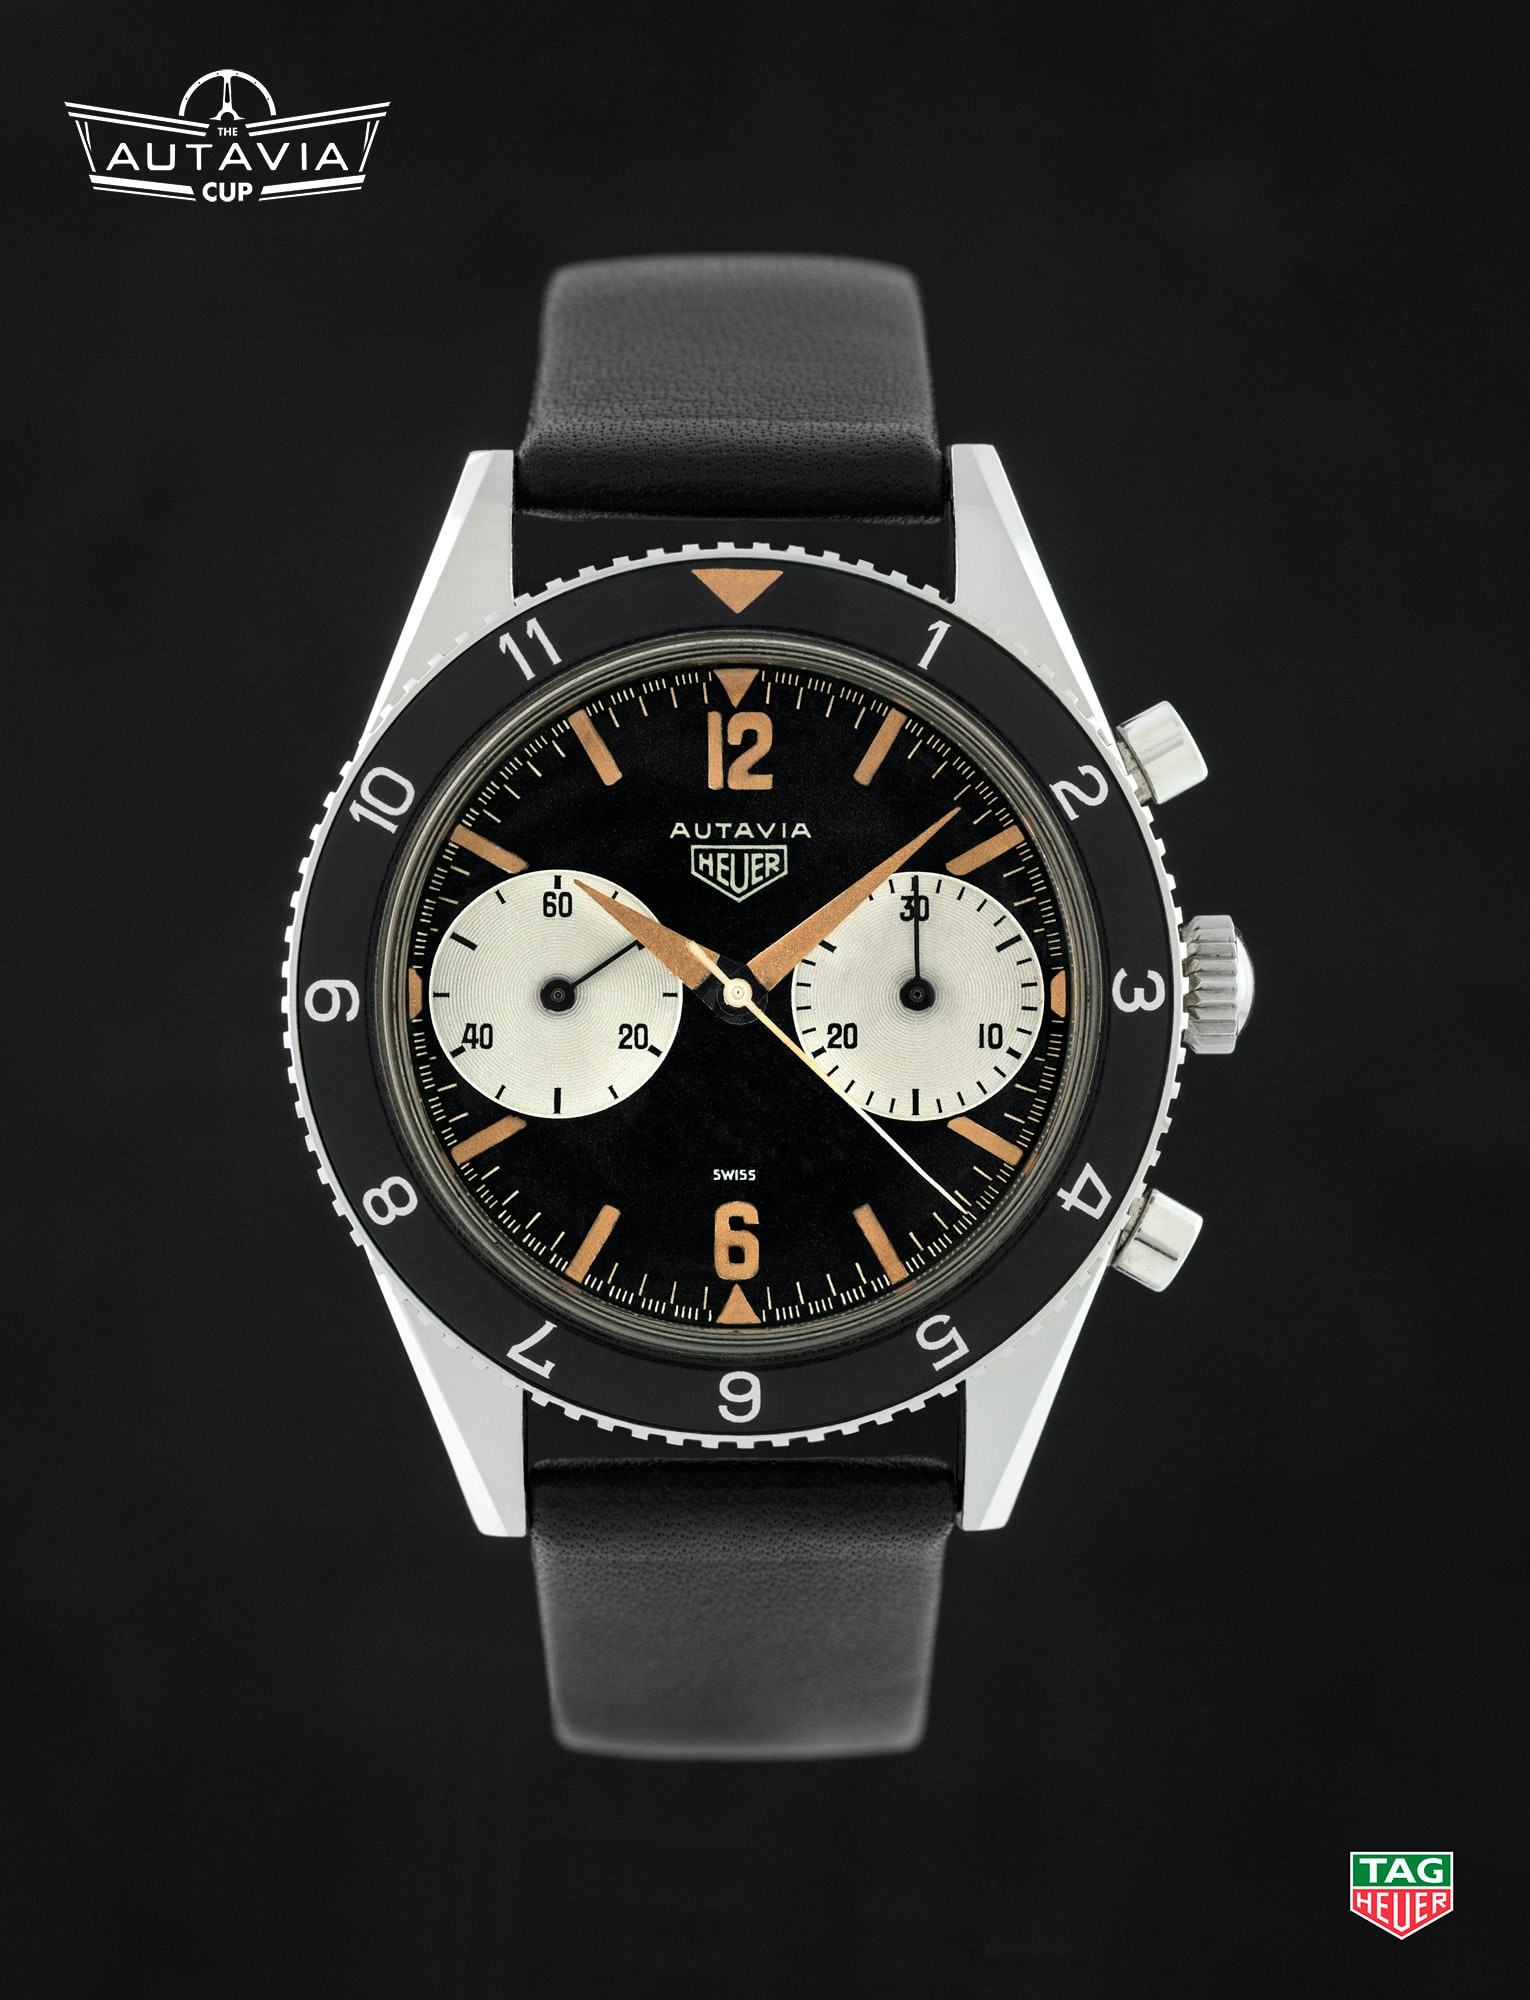 Heuer Autavia Ref. 3646 Mk1 Lume  TAG Heuer Will Relaunch The Autavia In 2017 – And Fans Get To Choose The Model TAG Heuer Will Relaunch The Autavia In 2017 – And Fans Get To Choose The Model 03 3646 Mk1 lume